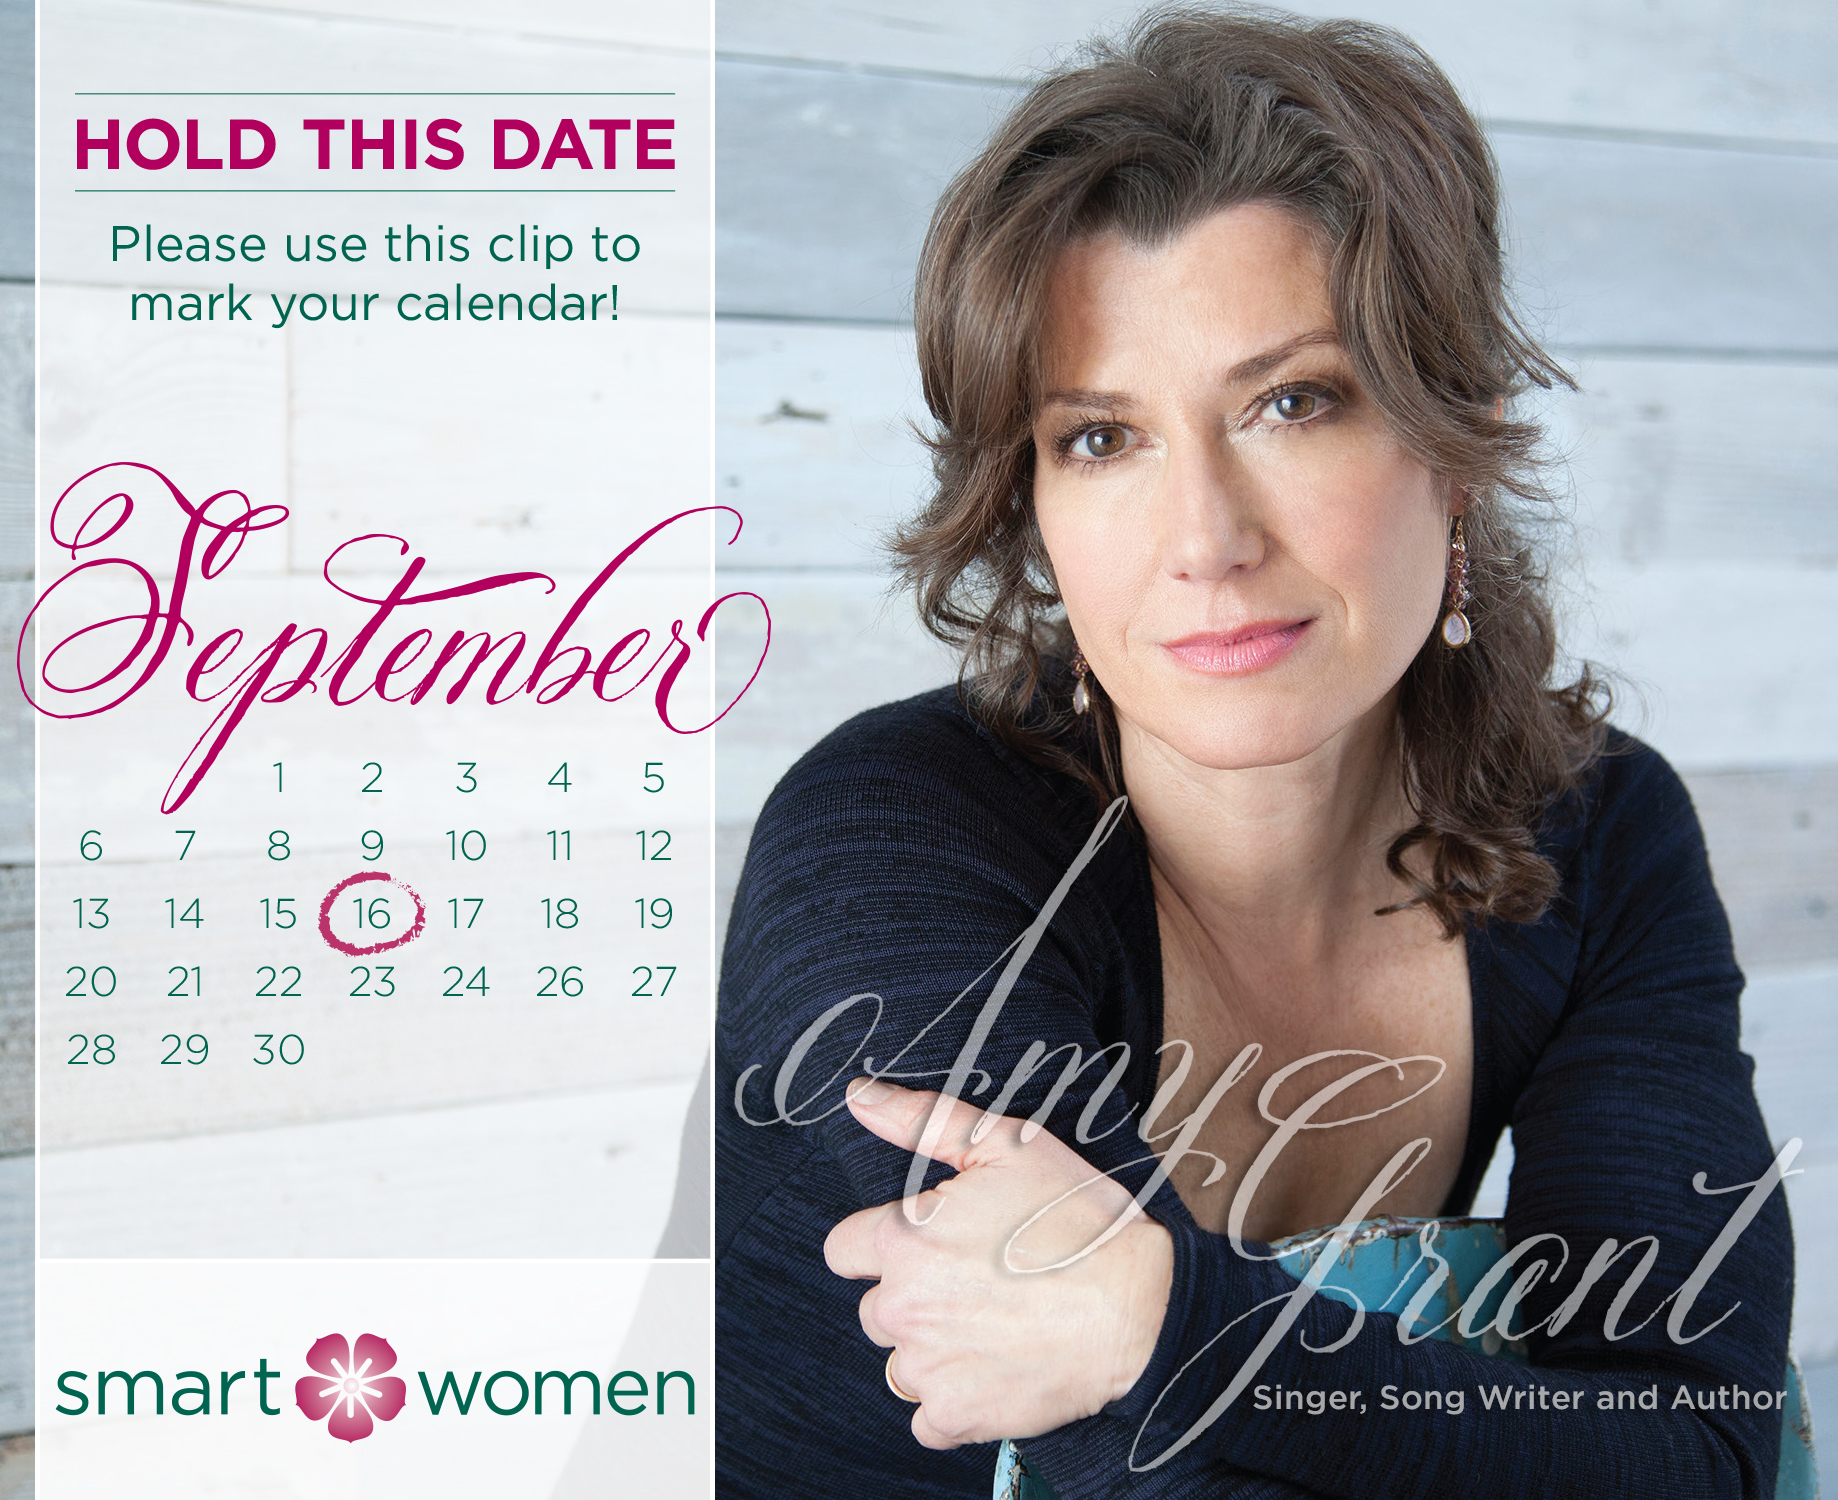 SmartWomen 2015 Save the Date-1.jpg